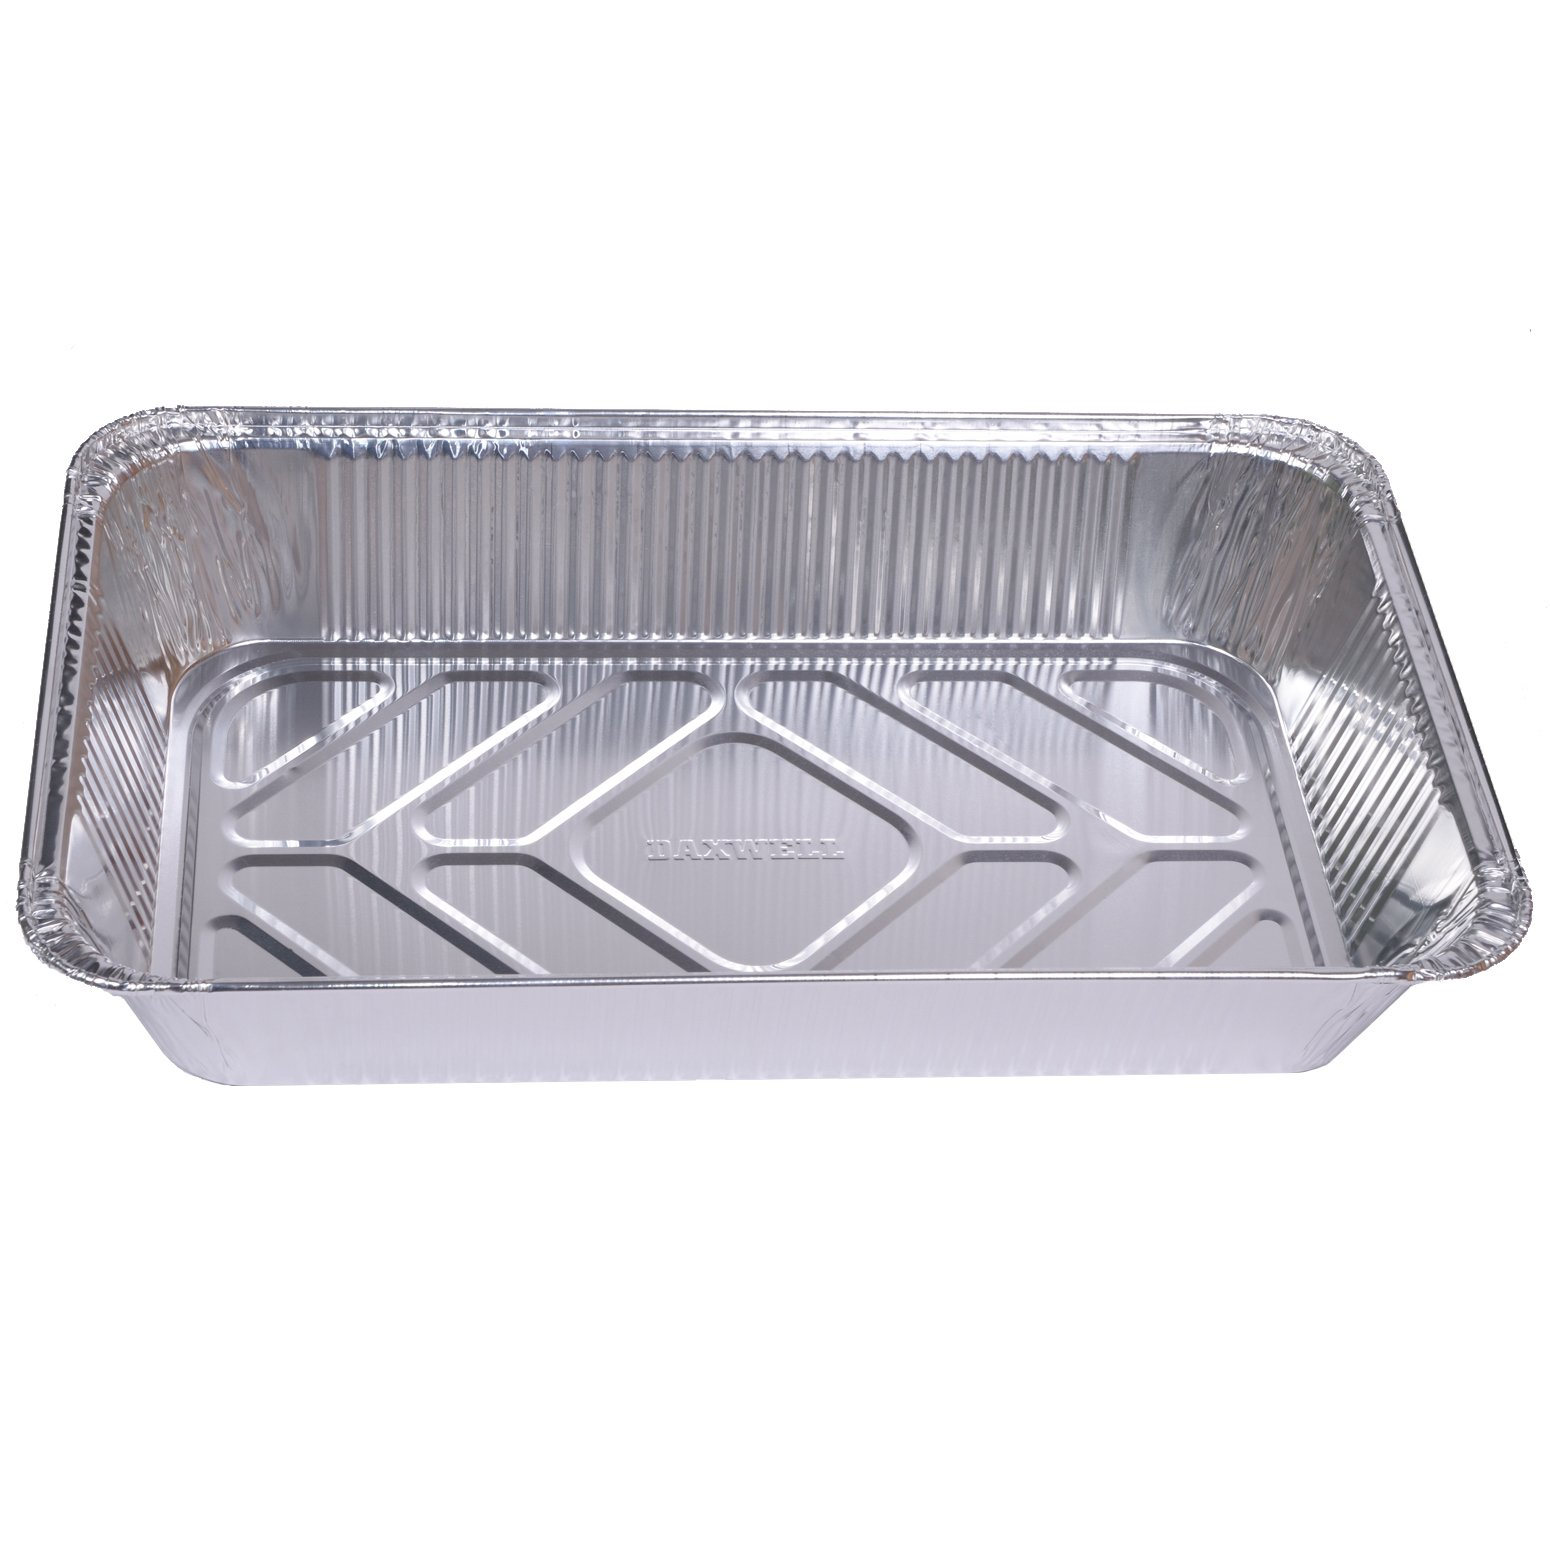 Daxwell Disposable Aluminum Steam Table Pan, Deep, Full Size (Pack of 50)